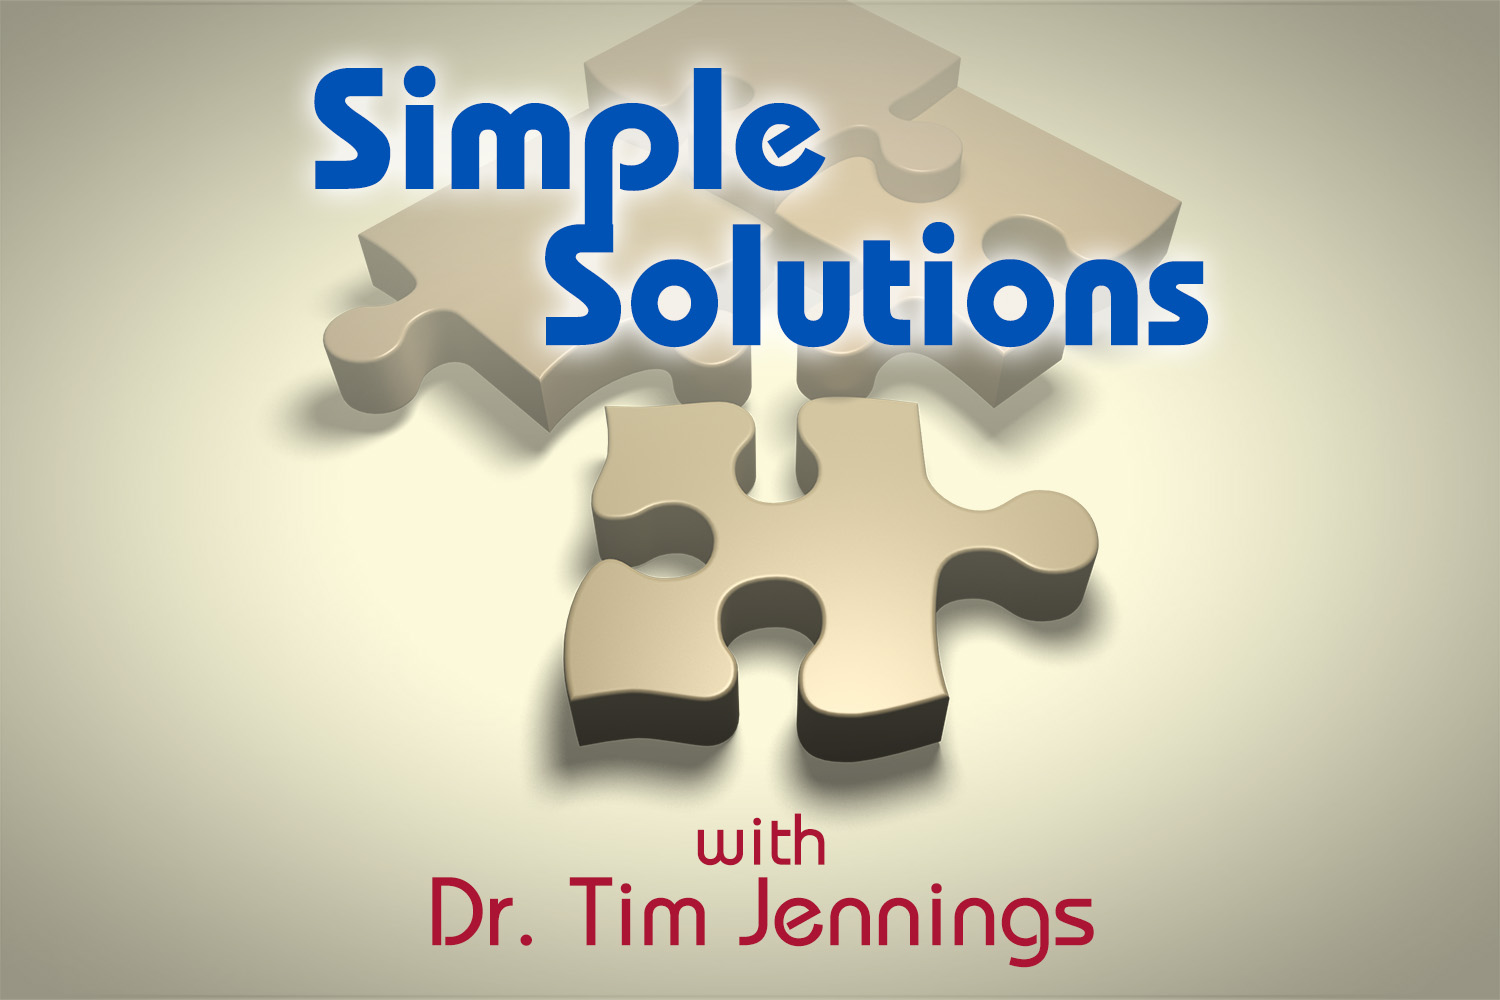 Simple Solutions with Dr. Tim Jennings